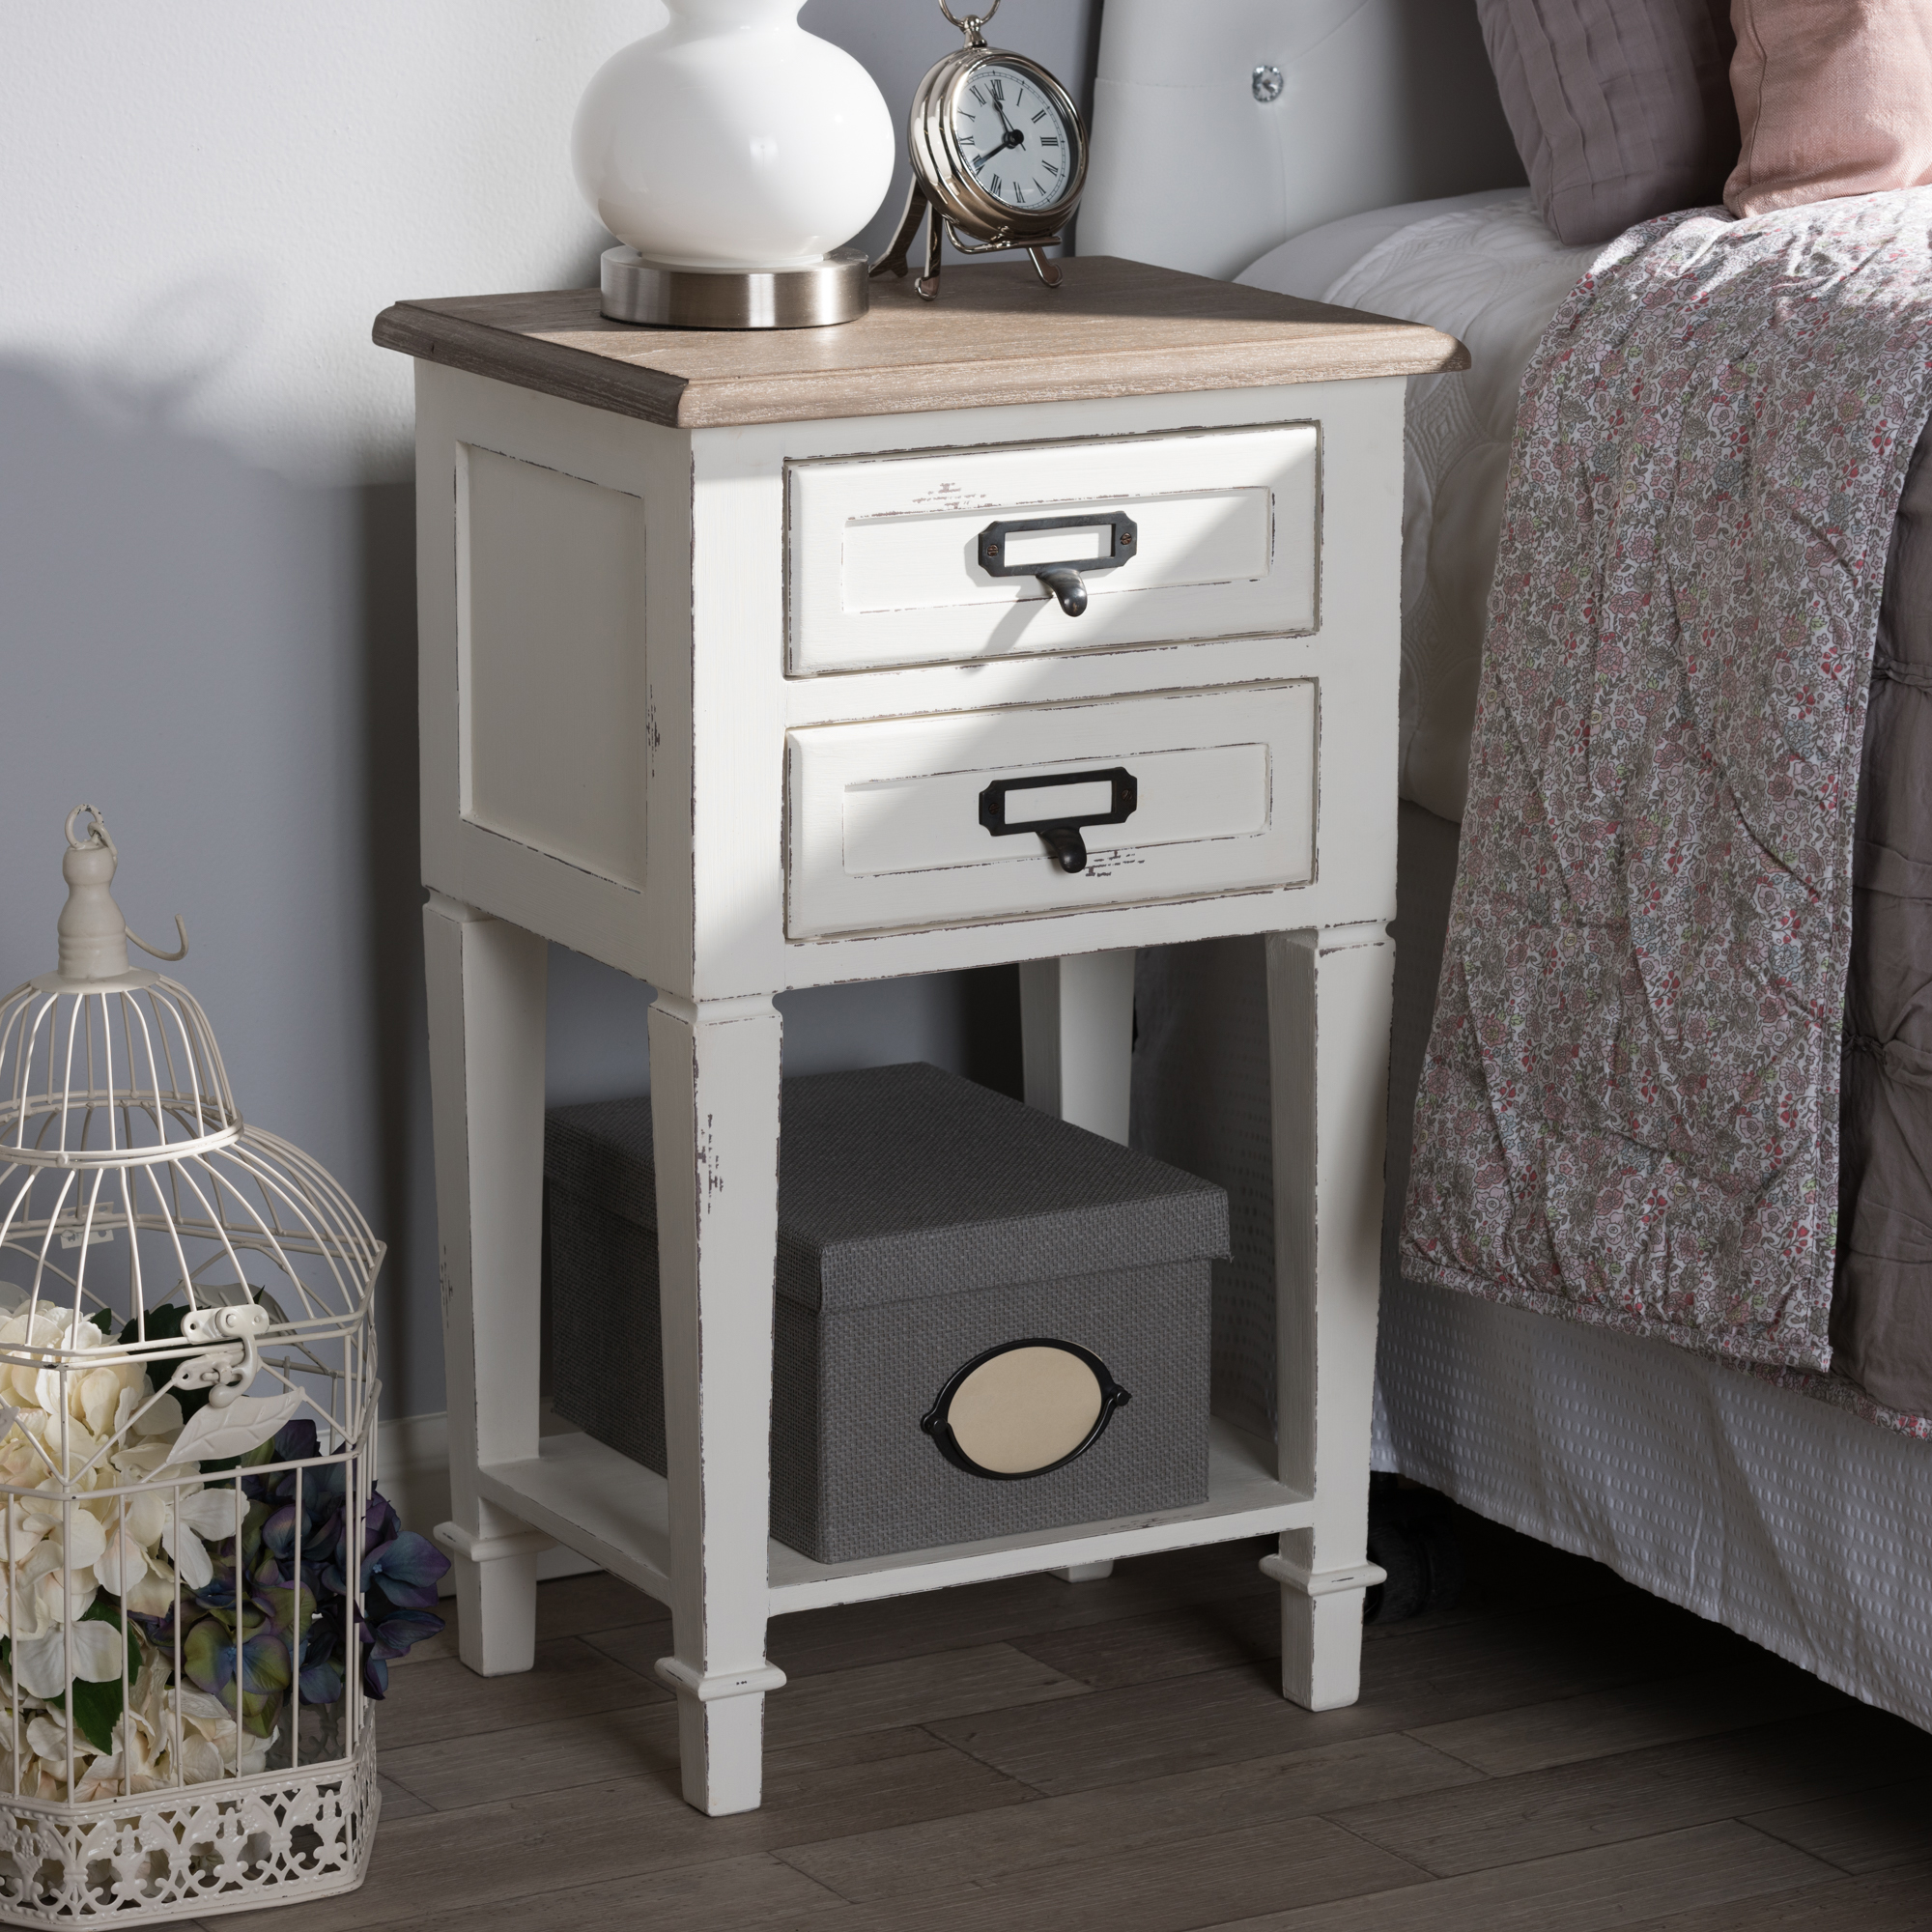 distressed white washed furniture. Baxton Studio Dauphine Provincial Style Weathered Oak And White Wash Distressed Finish Wood Nightstand - IECHR20VM Washed Furniture A